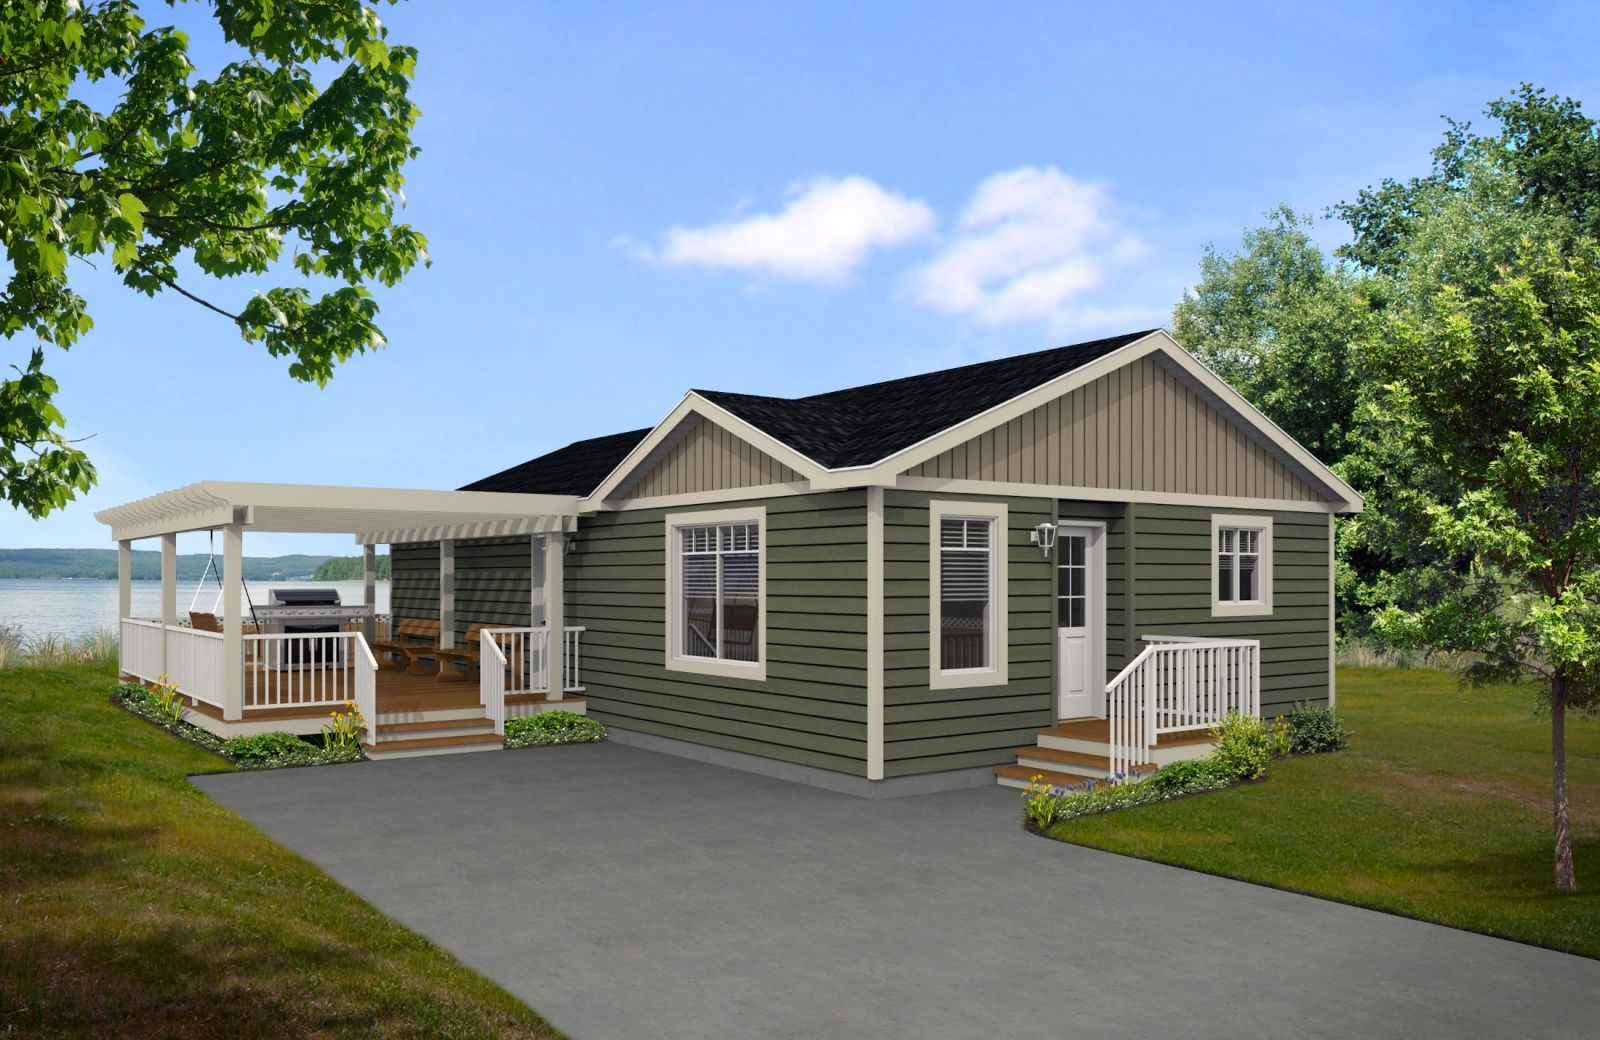 Manufactured vs modular what s the difference - What is the difference between modular and manufactured homes ...